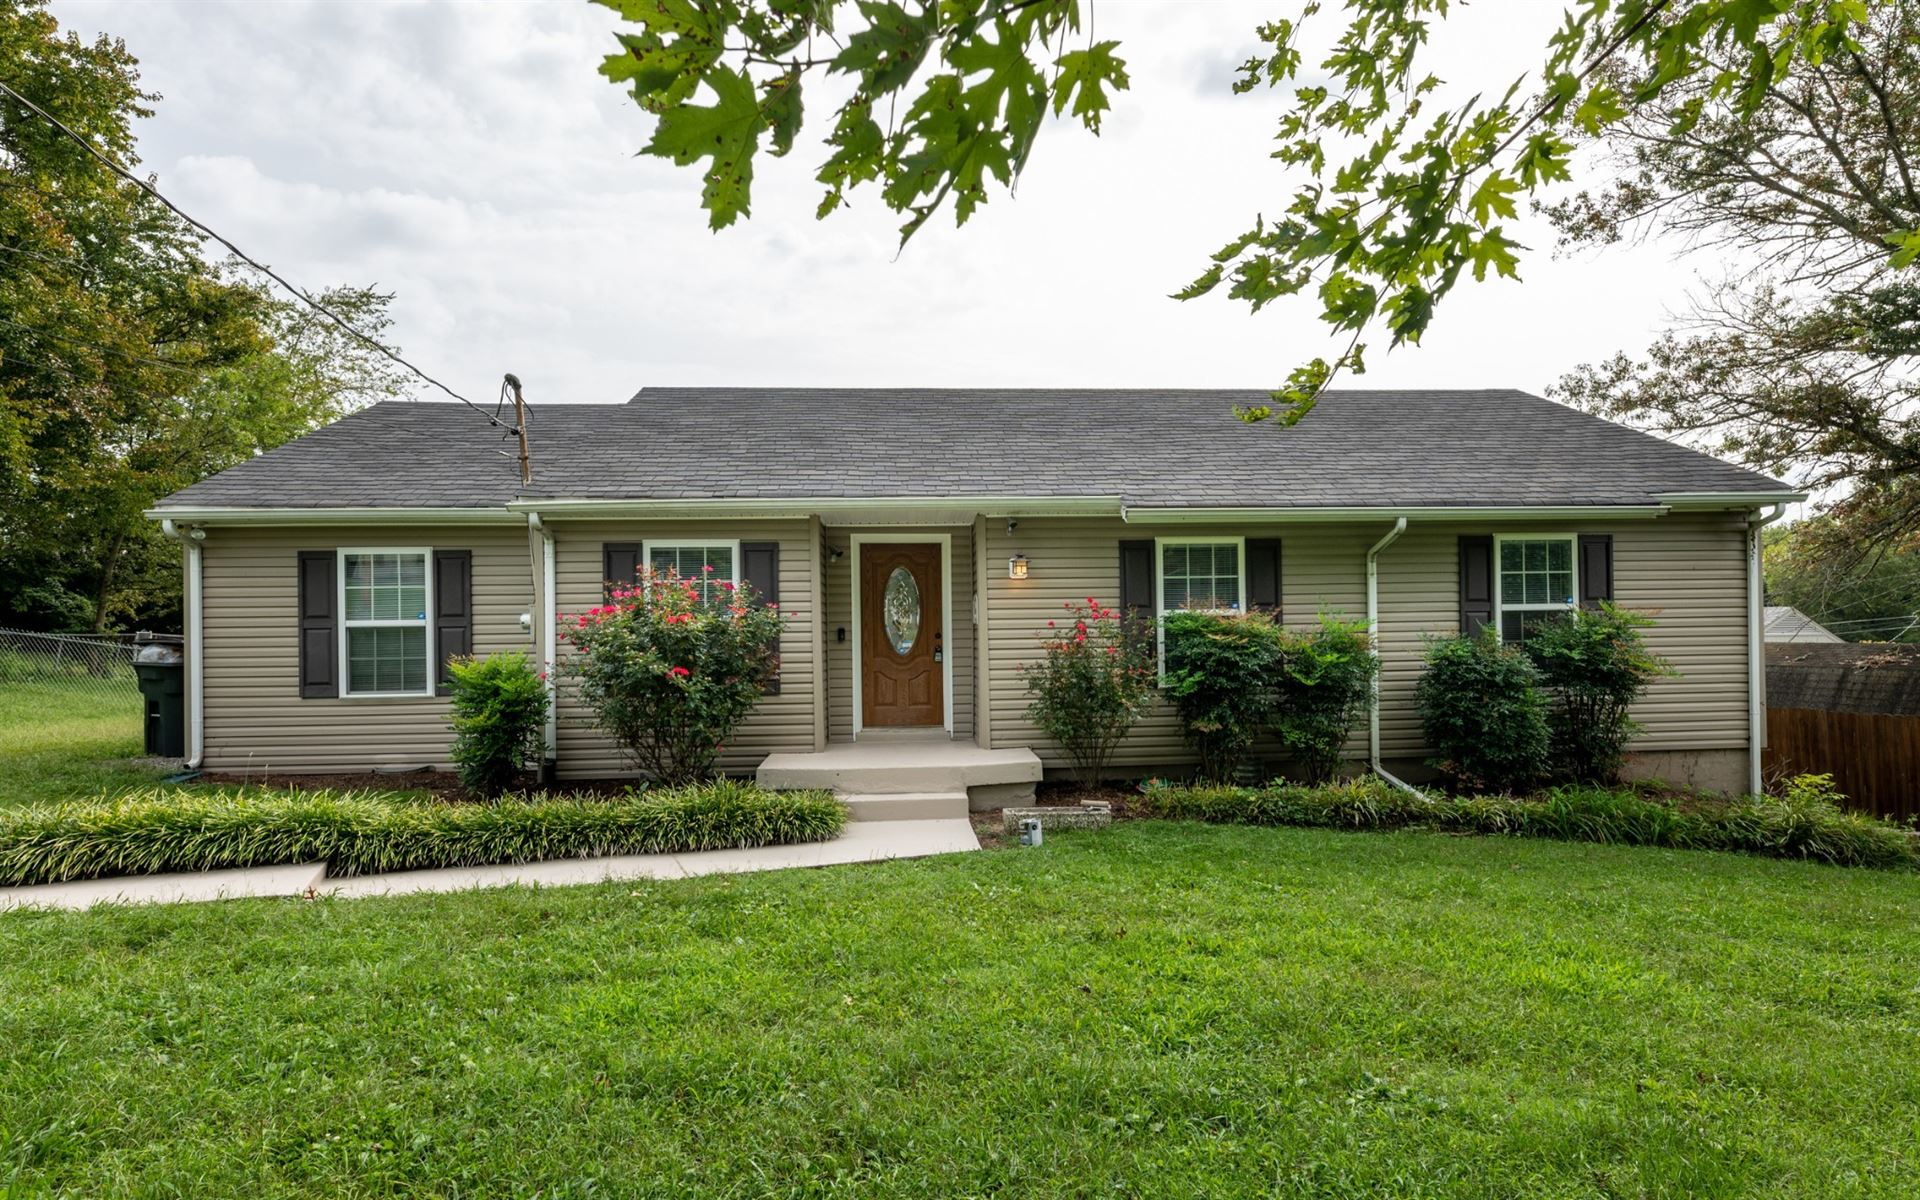 102 Cedar Ct, Hendersonville, TN 37075 - MLS#: 2222197